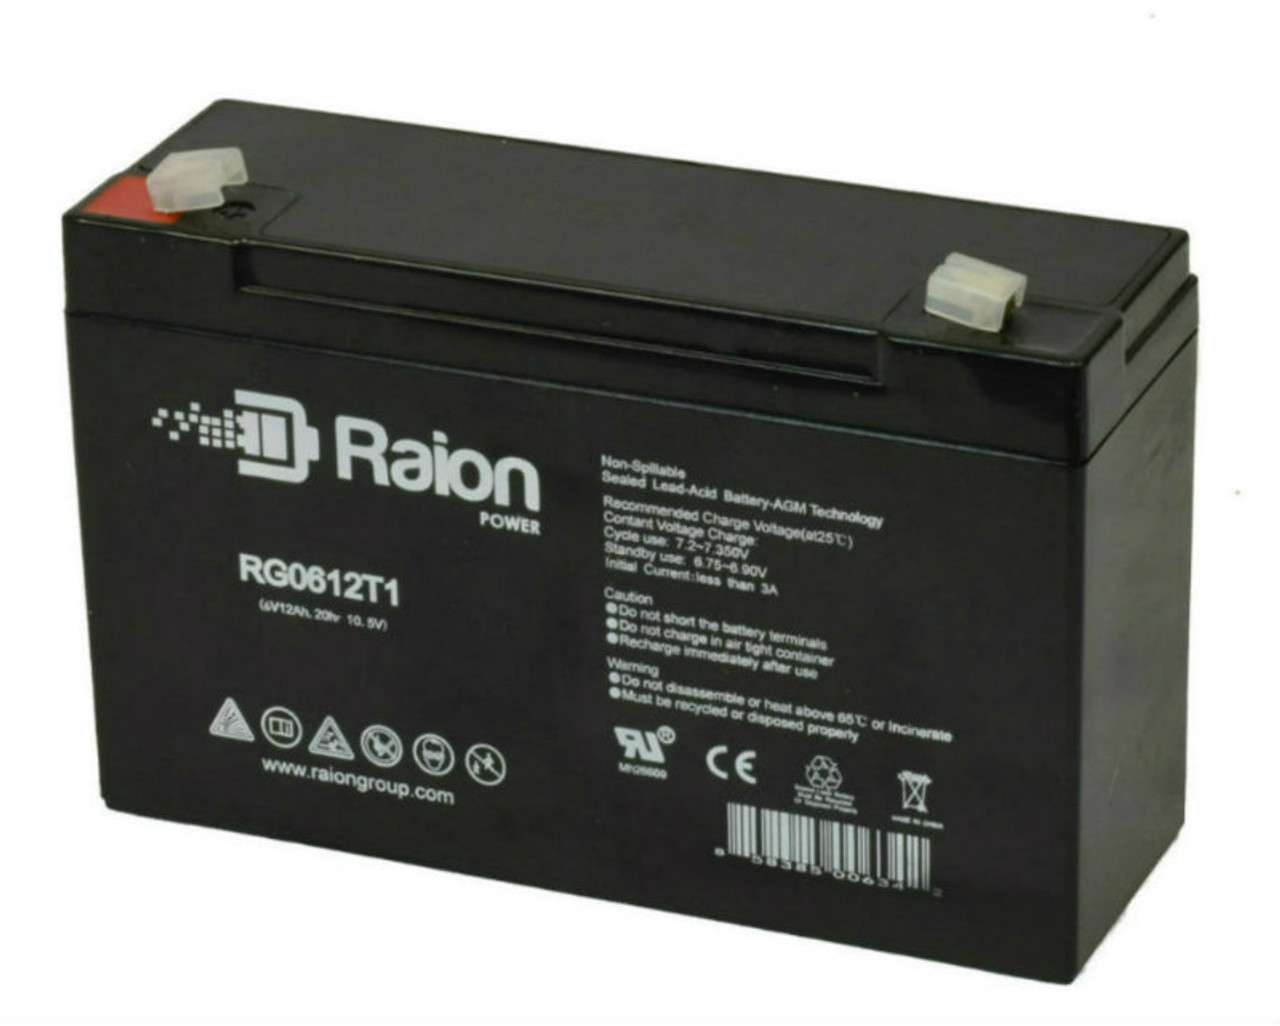 Raion Power RG06120T1 Replacement Battery Pack for Sure-Lites IND5 emergency light